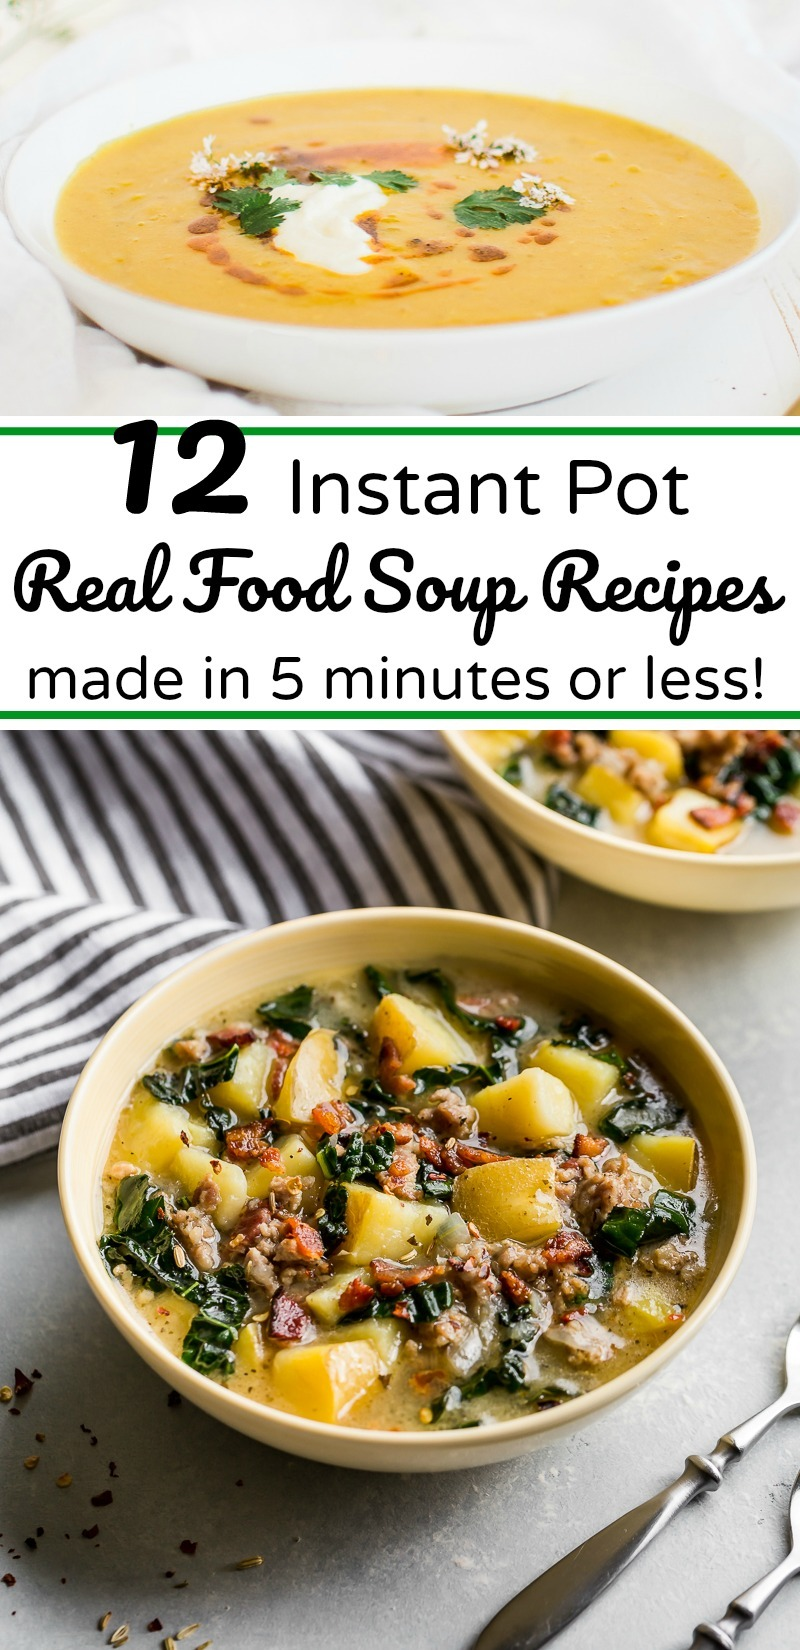 bowls of instant pot real food soups that are made in 5 minutes or less